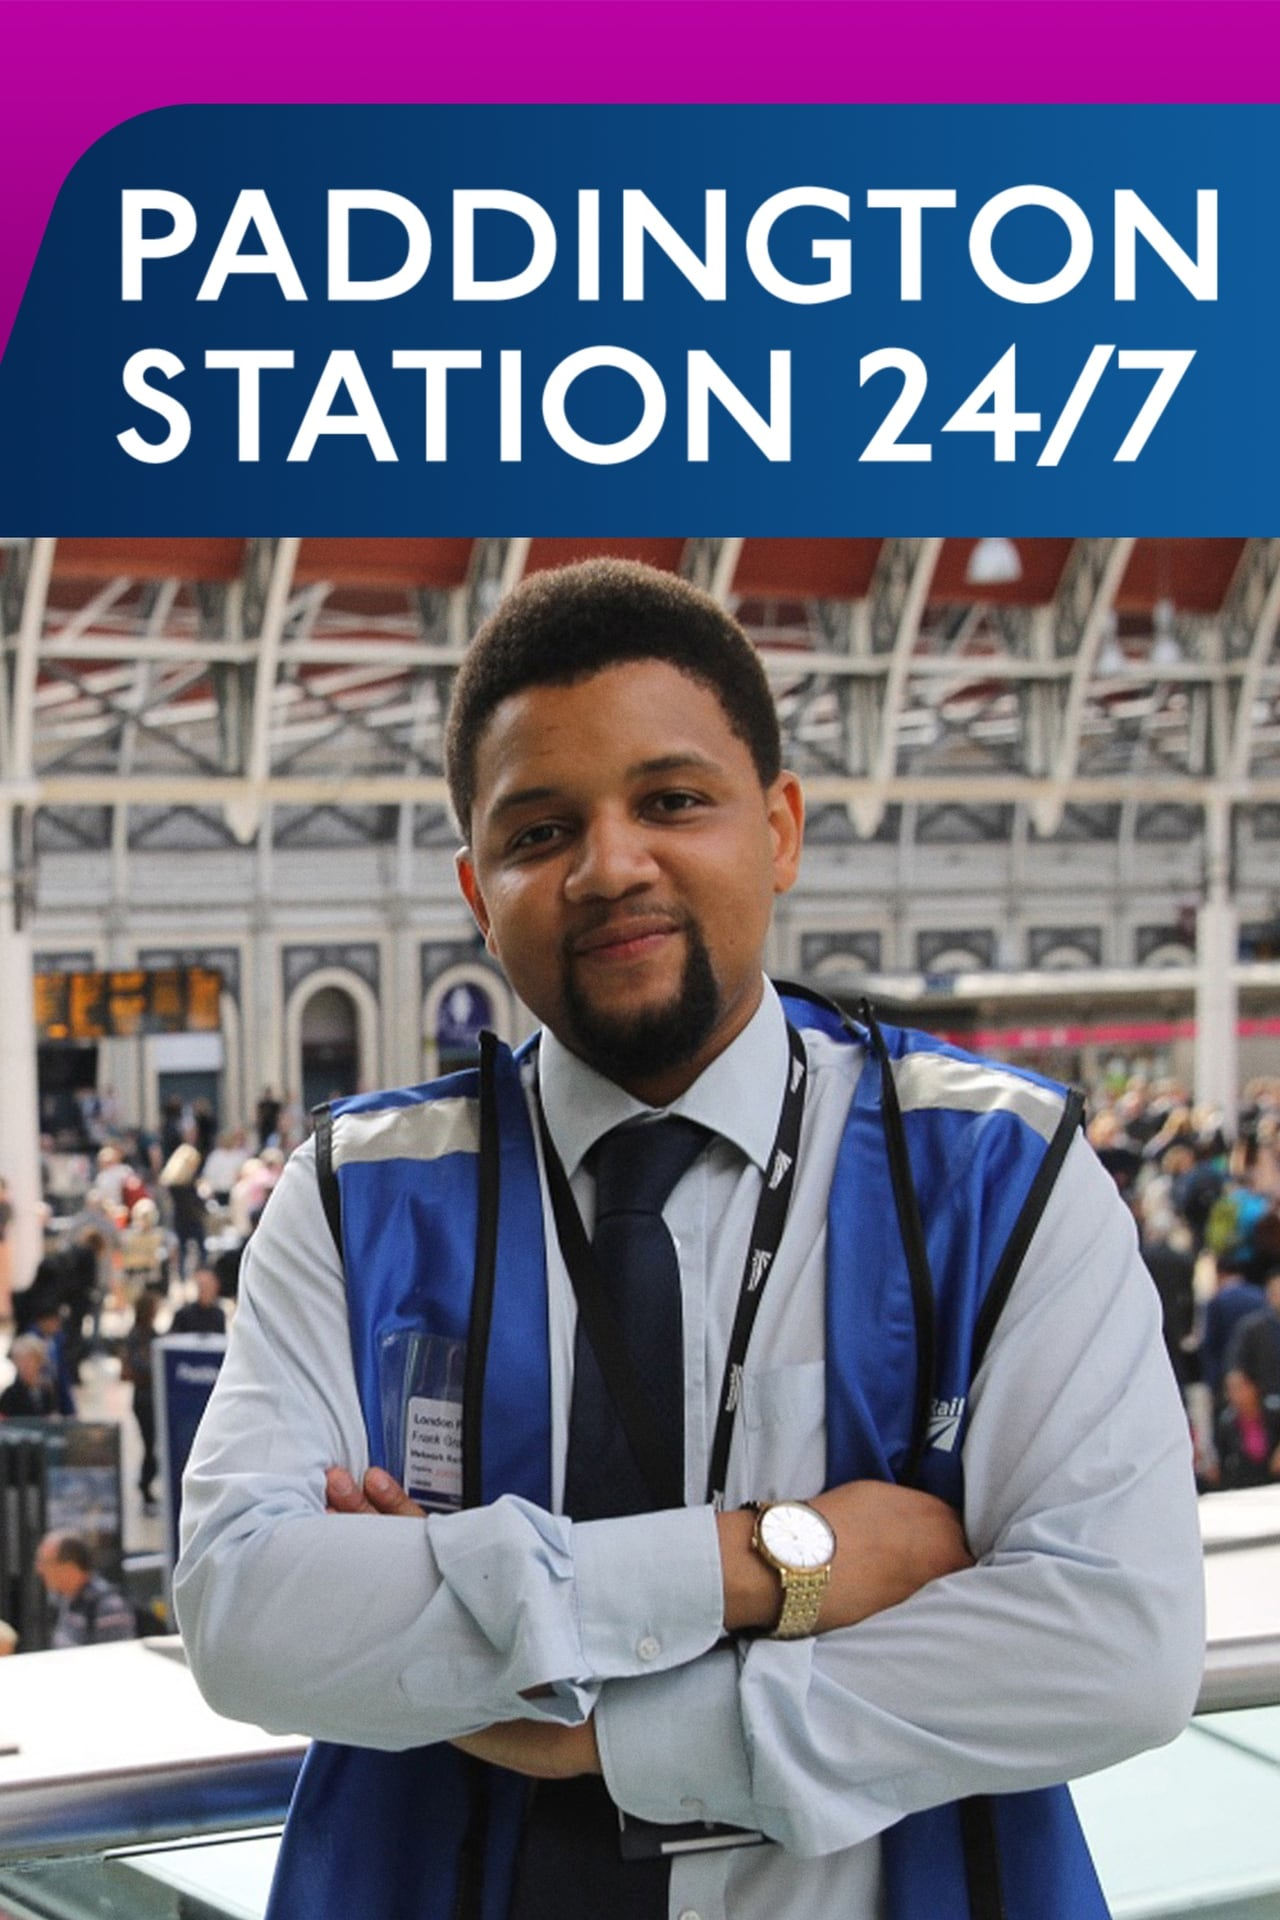 Paddington Station 24/7 Season 2